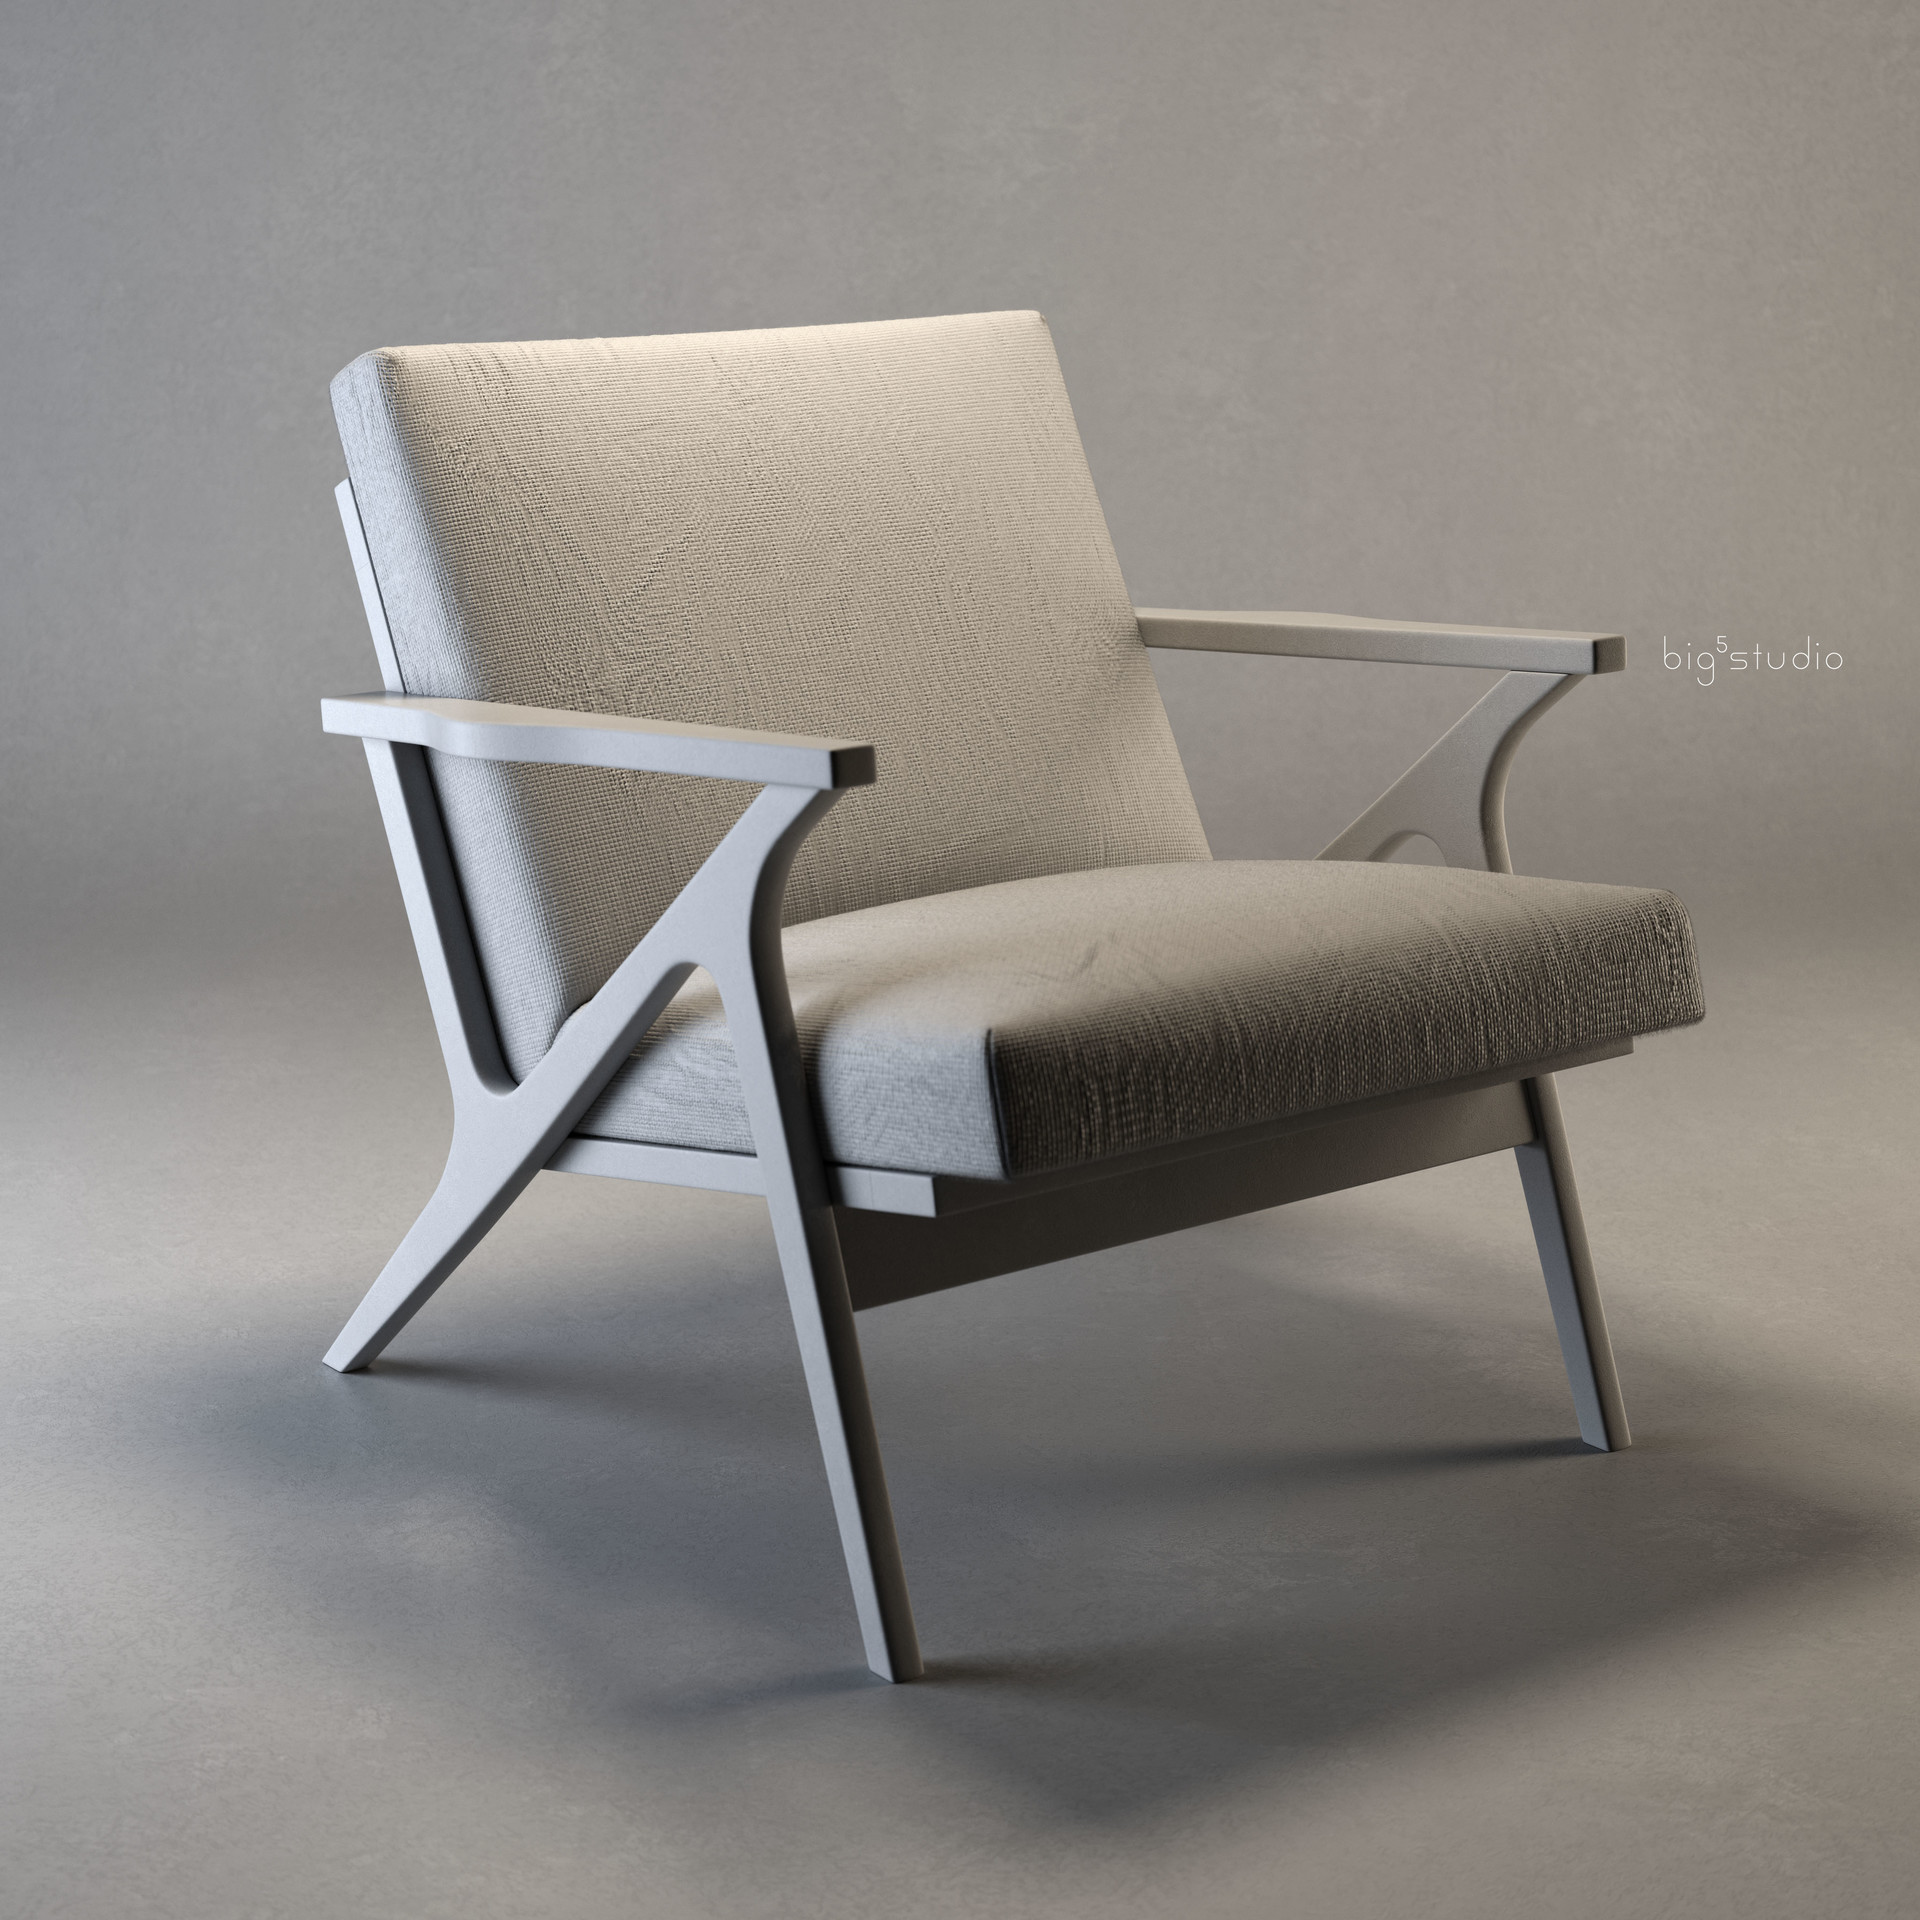 Neal biggs product chair cavettwoodframe0000 clay